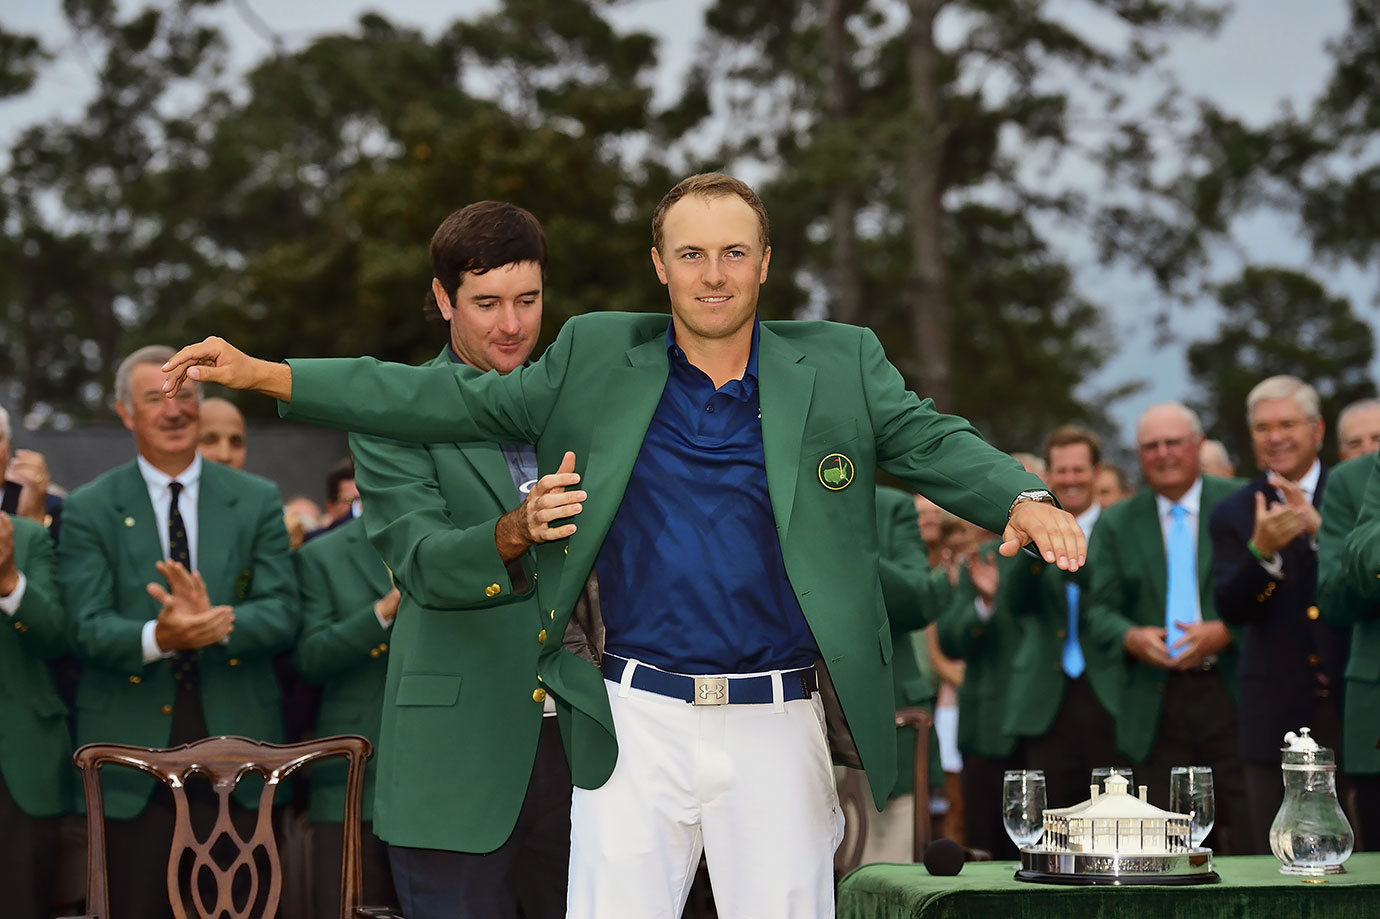 Spieth made everyone in the golfing world take notice by winning his first Masters title at the age of 21 this spring. The 21-year-old led all four rounds, never letting anyone closer than three shots the entire way. He was the second-youngest champion, behind only Tiger Woods, and he followed up his green-jacket win by winning the 2015 U.S. Open just a few weeks later, becoming the sixth player to ever win the Masters and U.S. Open in the same year.